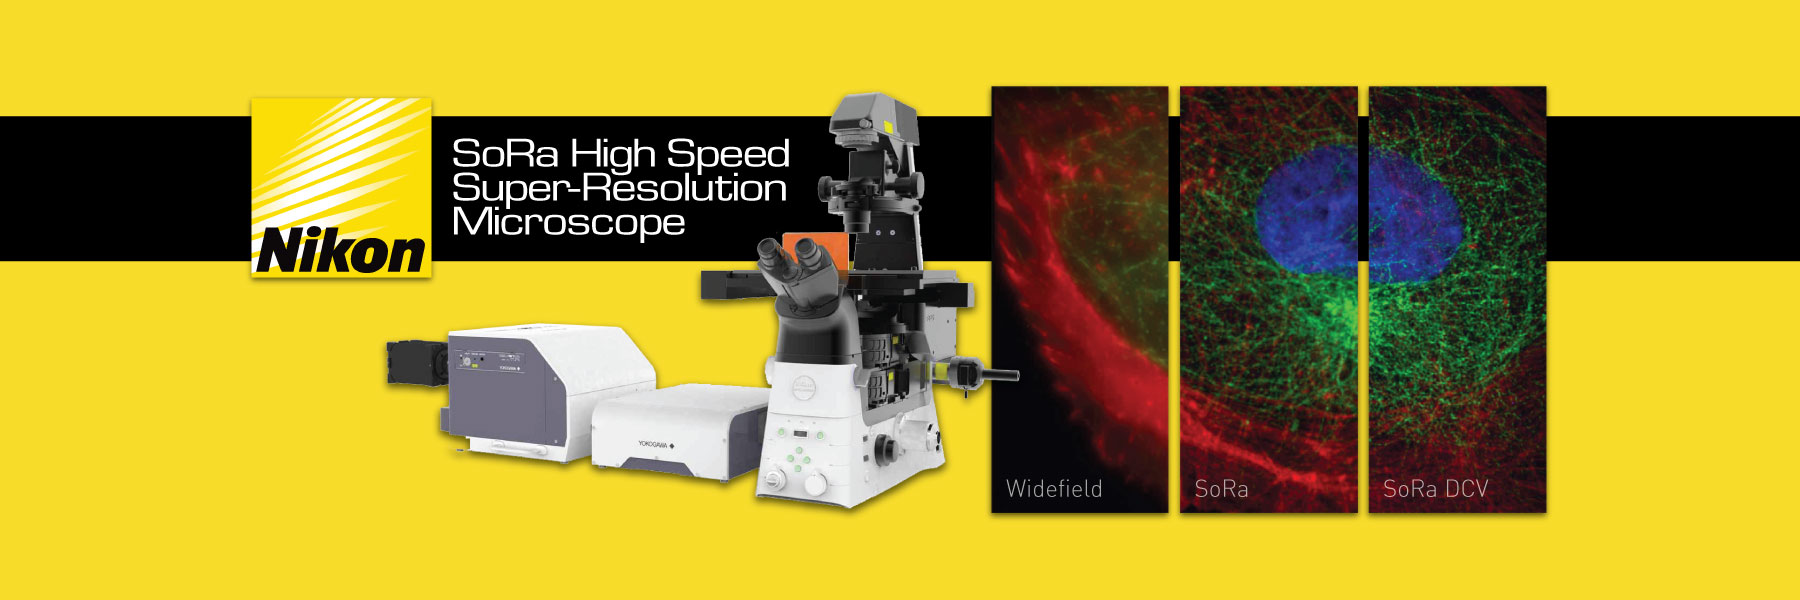 SORA High Speed Microscope